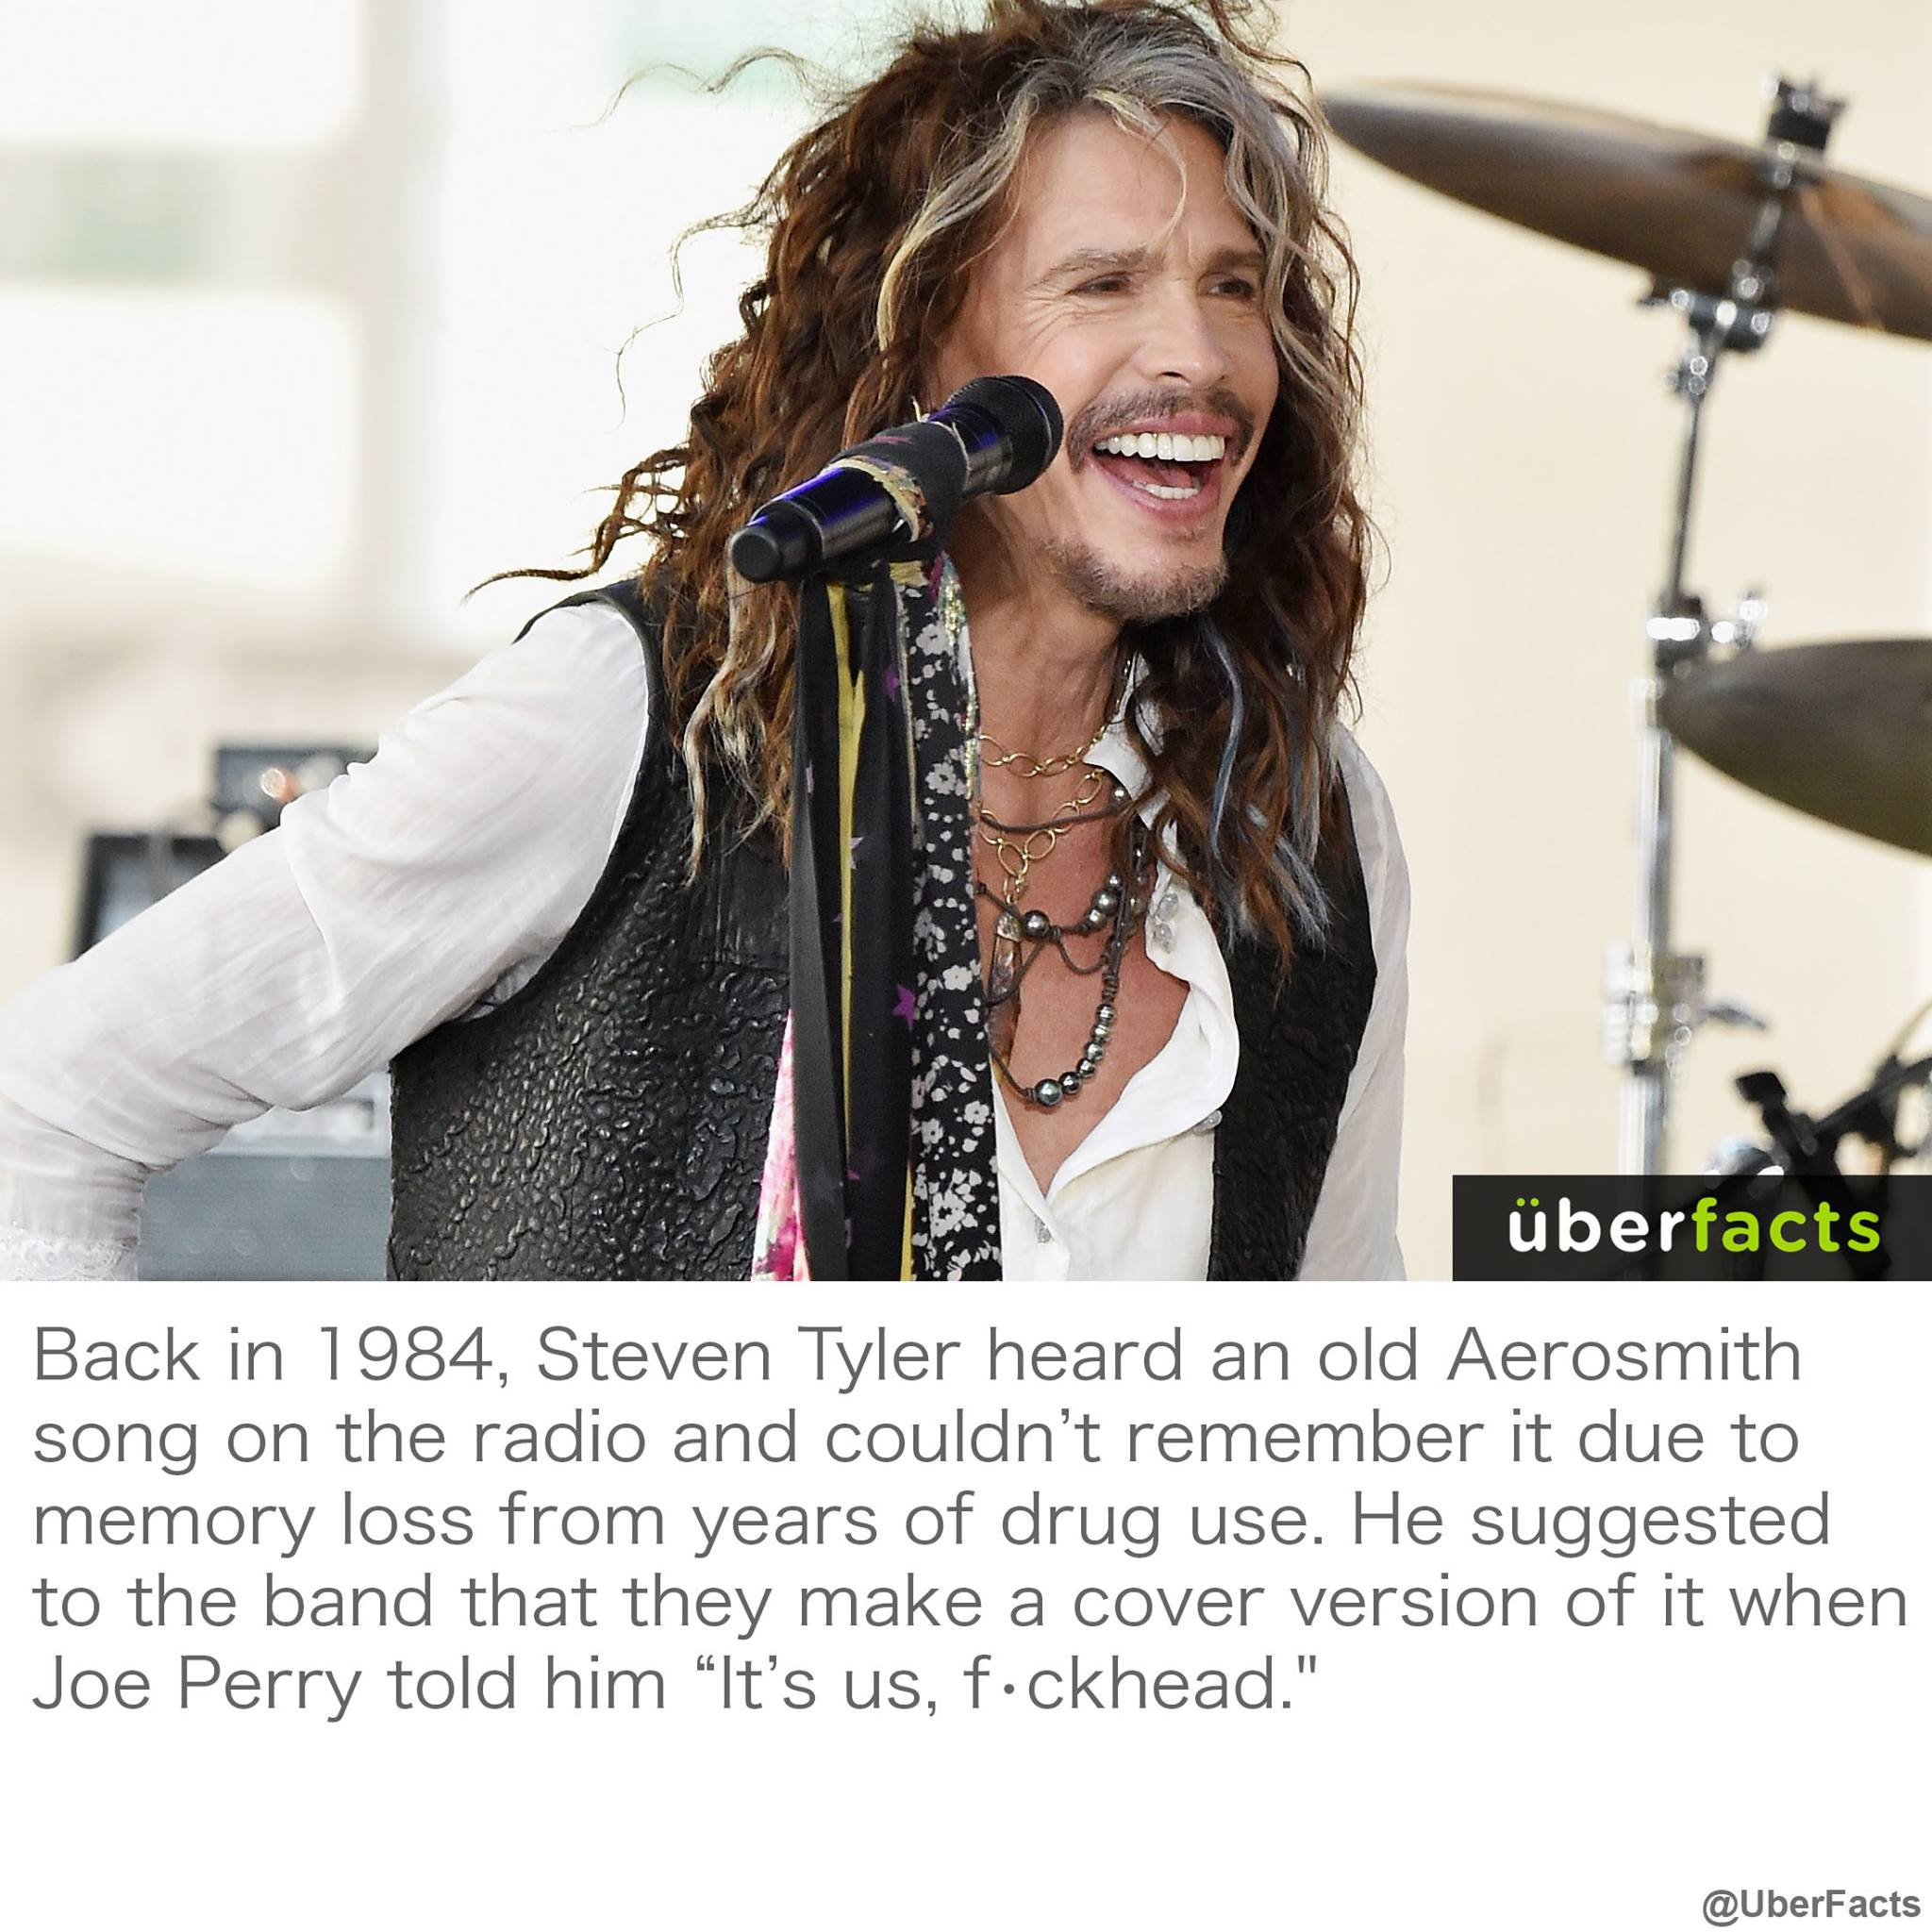 back in 1984 steven tyler heard an old aerosmith song on the radio and couldn't remember it die to memory loss from years of drug use, he suggested to the band that they make a cover of it when joe perry told him, it's us fuckhead